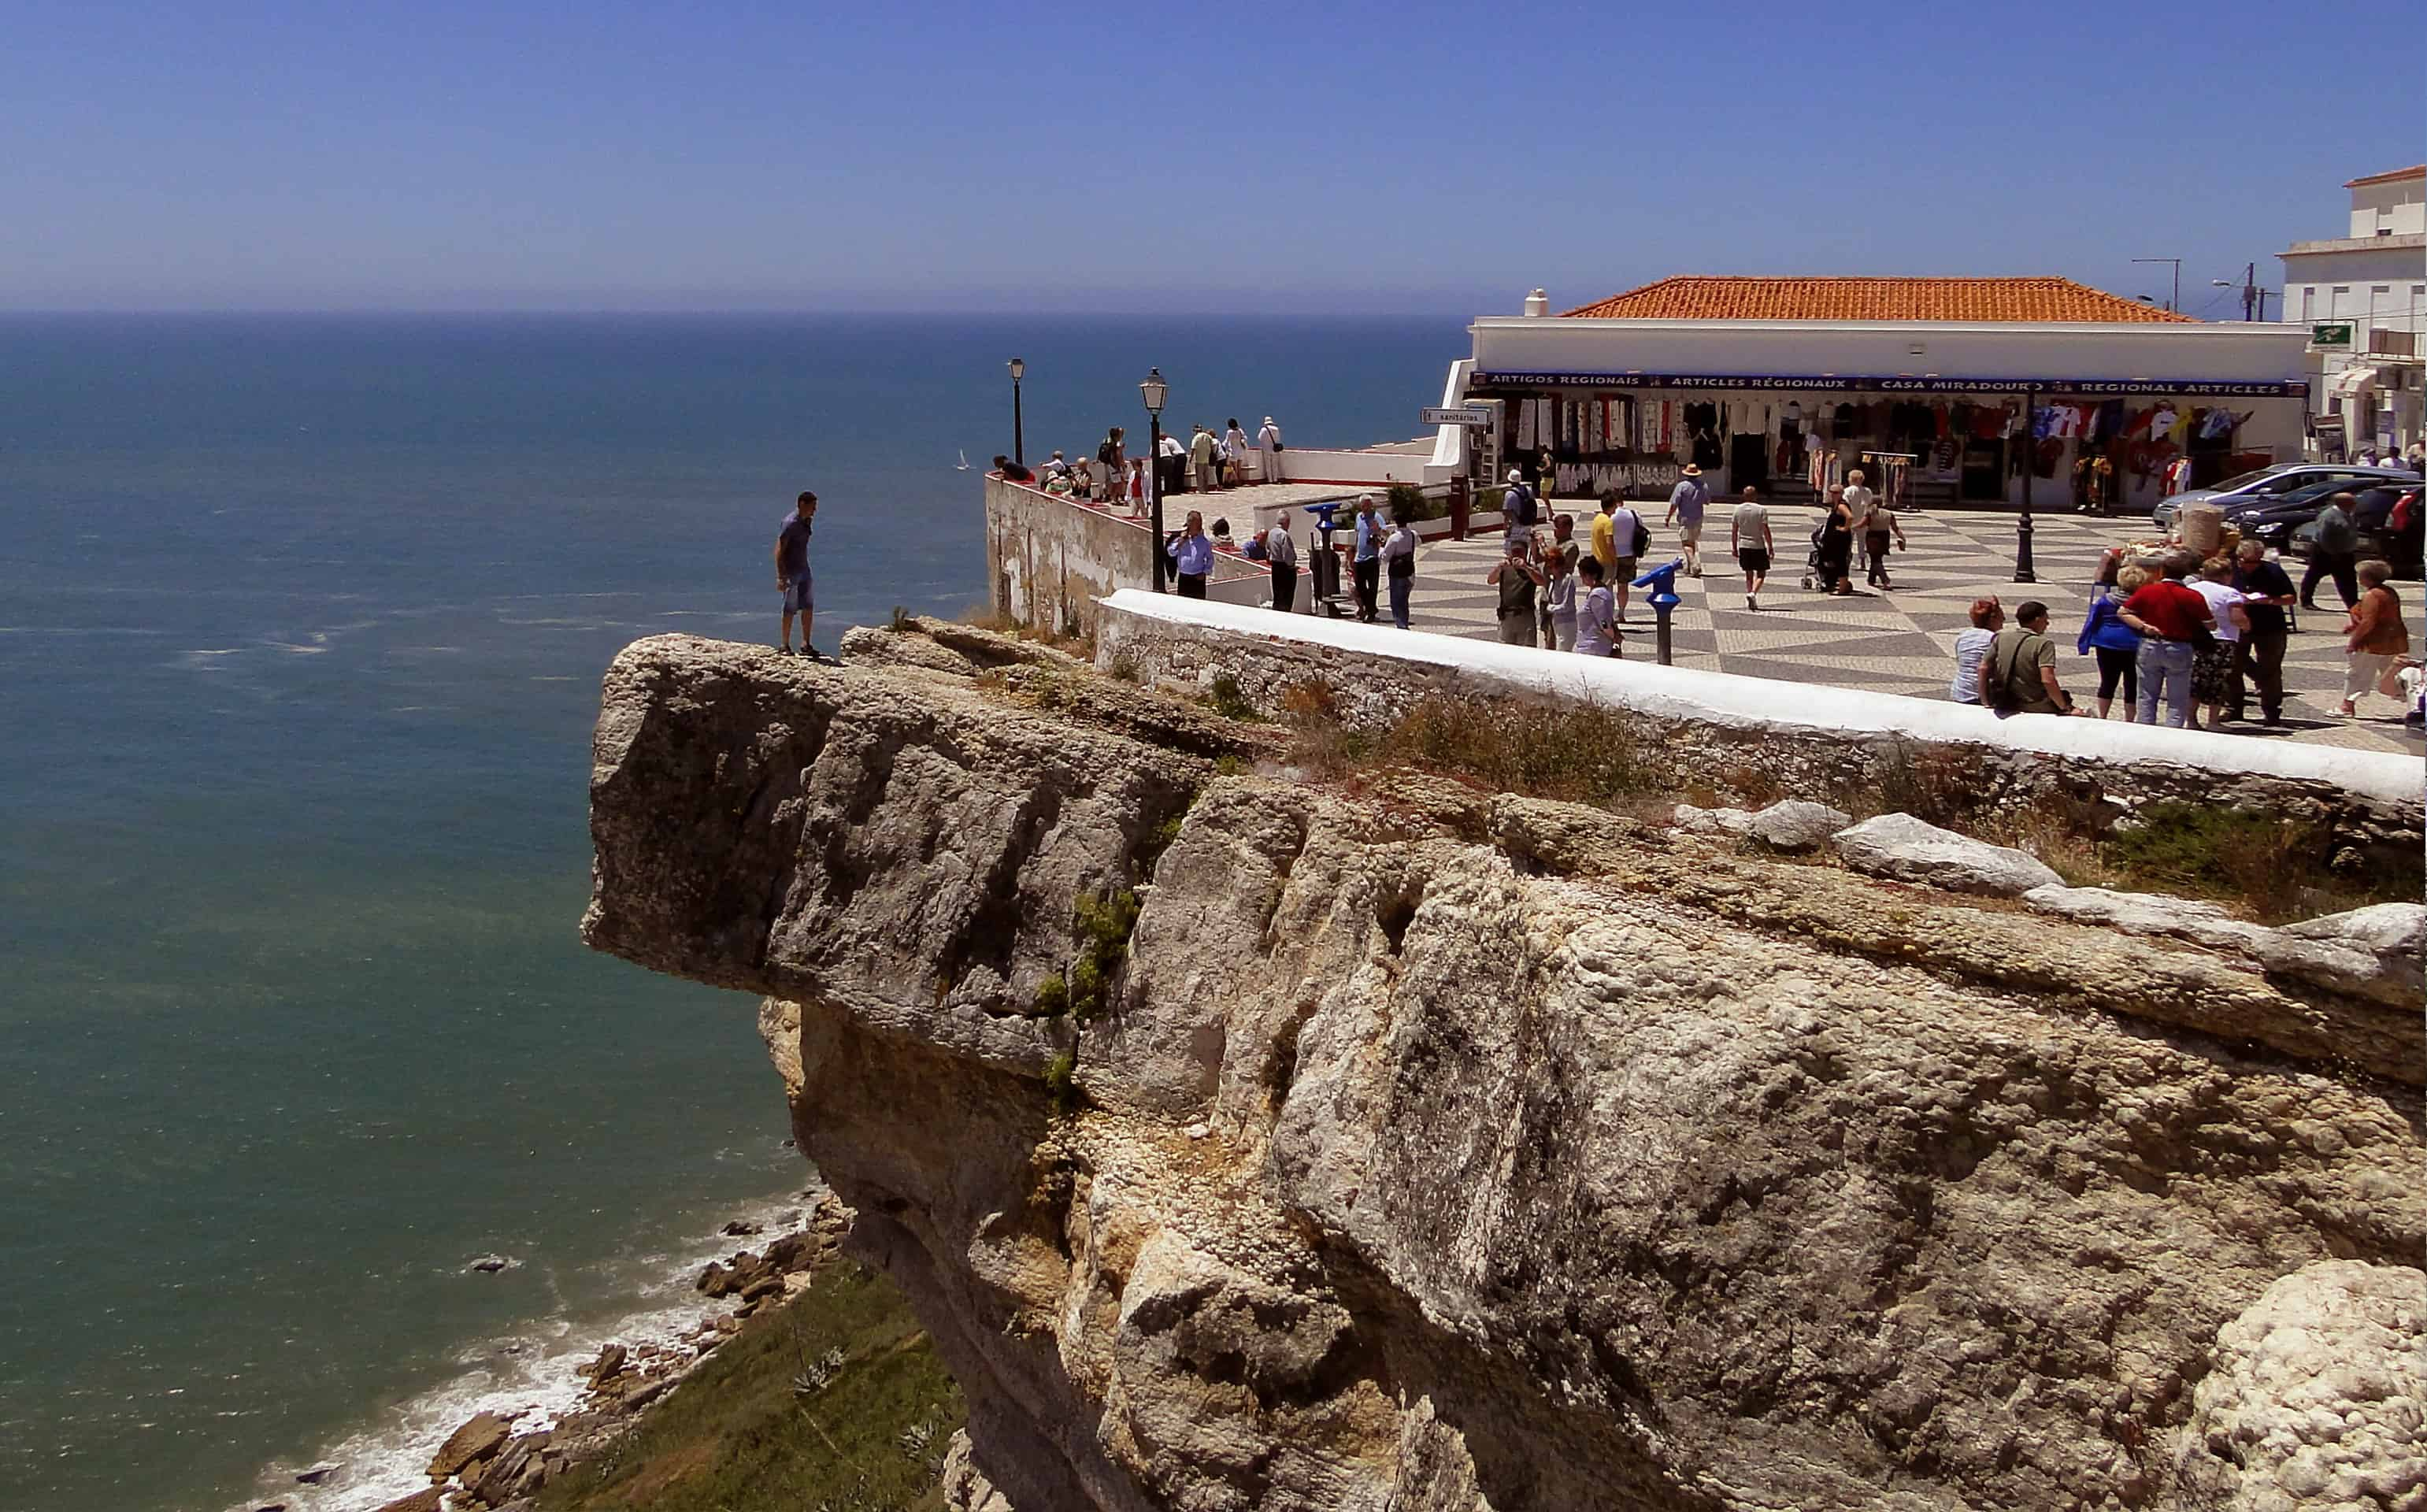 The scenic viewpoint over Nazare